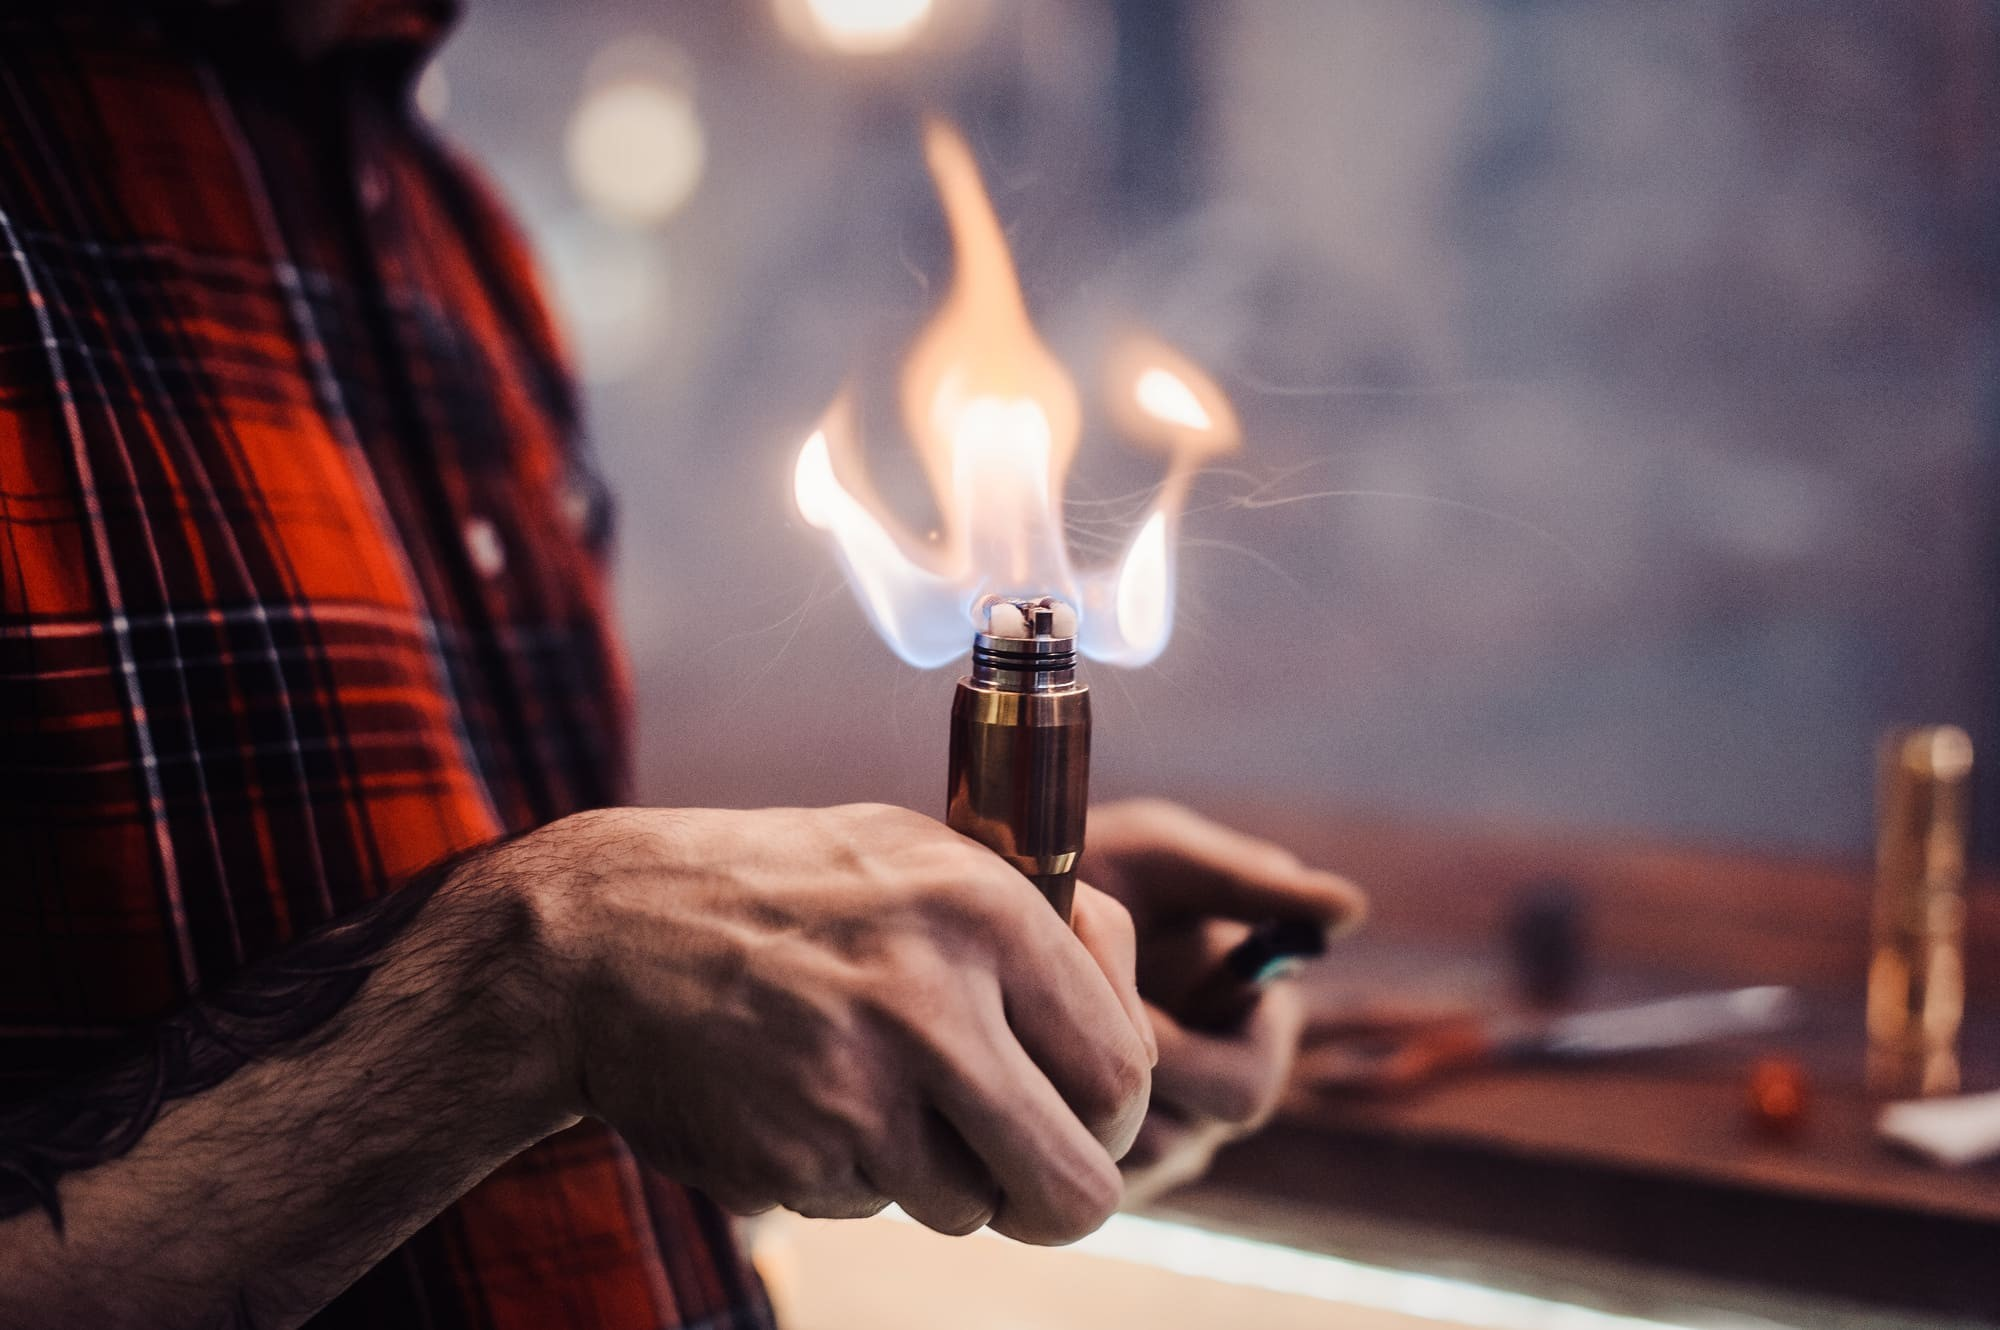 Control the Burn: Why Your Vape Tastes Burnt and What to Do About It